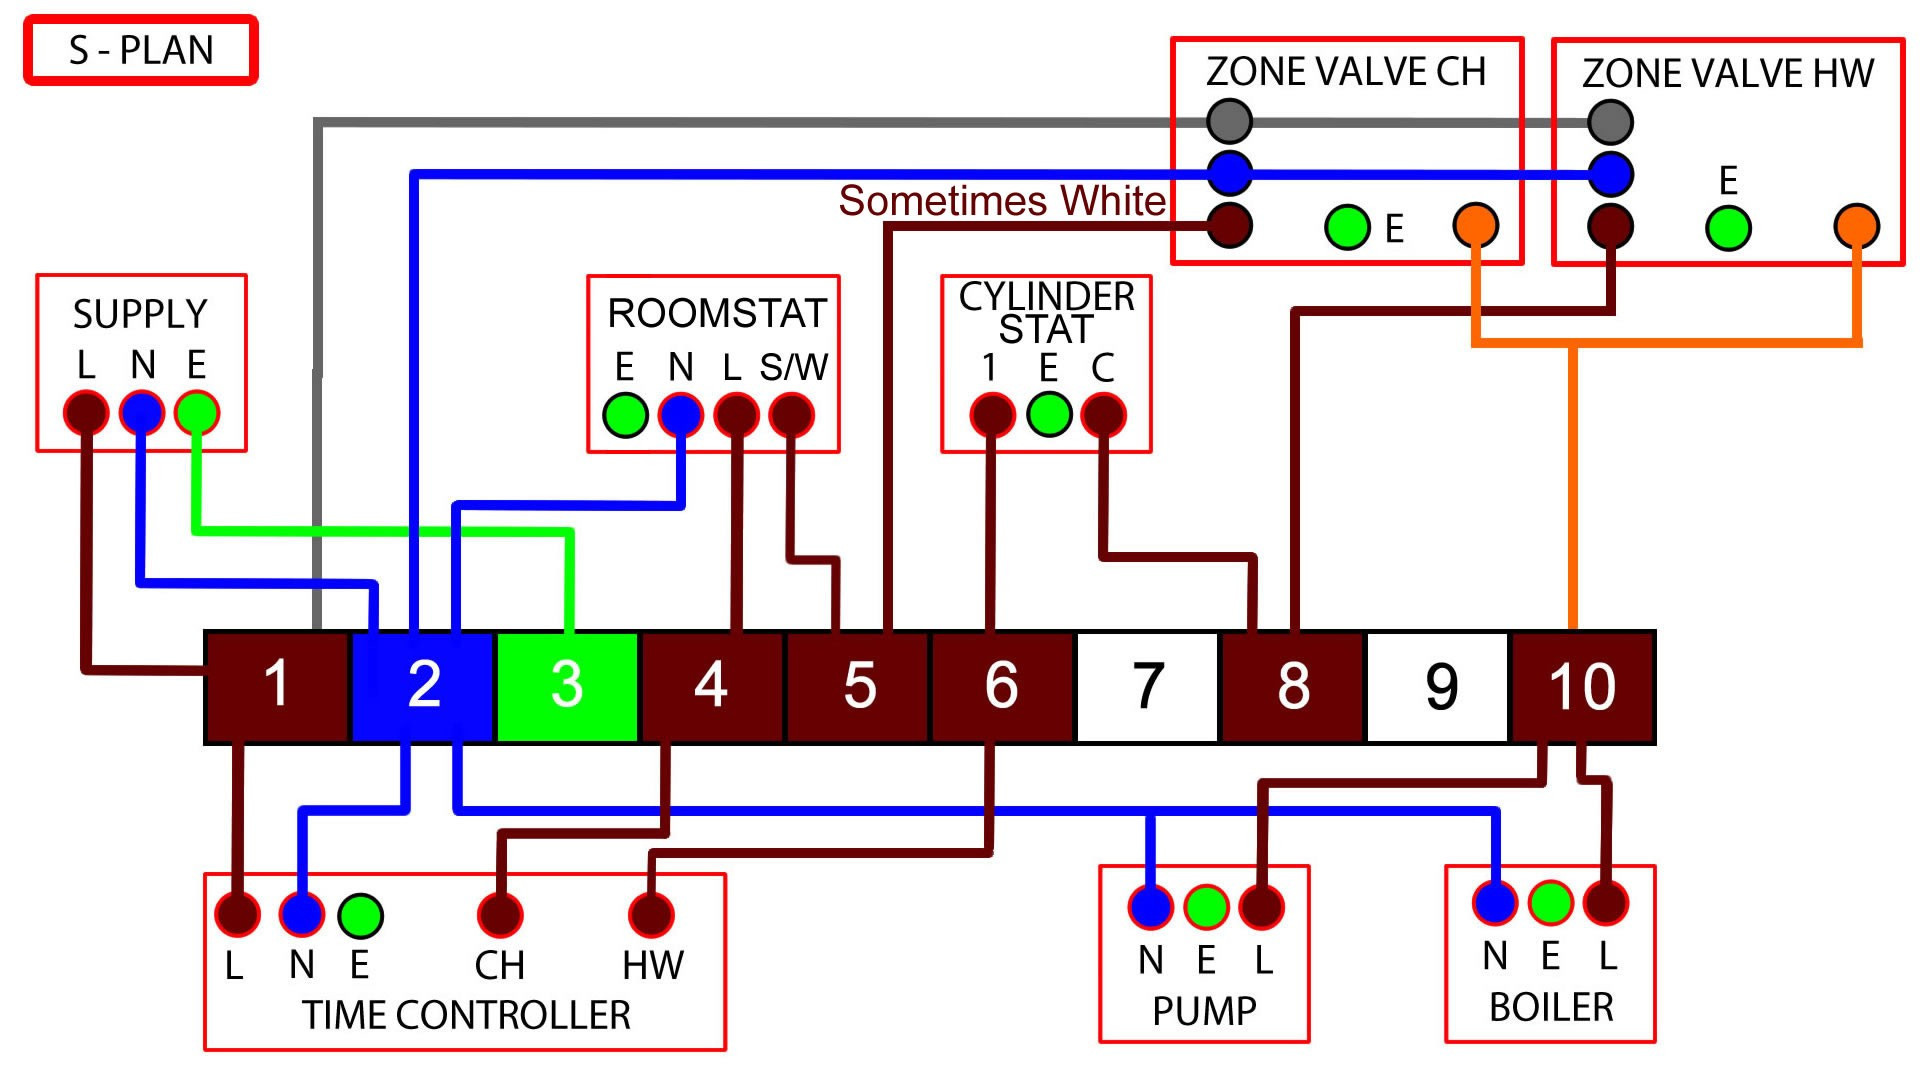 hight resolution of 1920x1080 wiring diagram for s plan heating system new unique s plan wiring electrical sketch